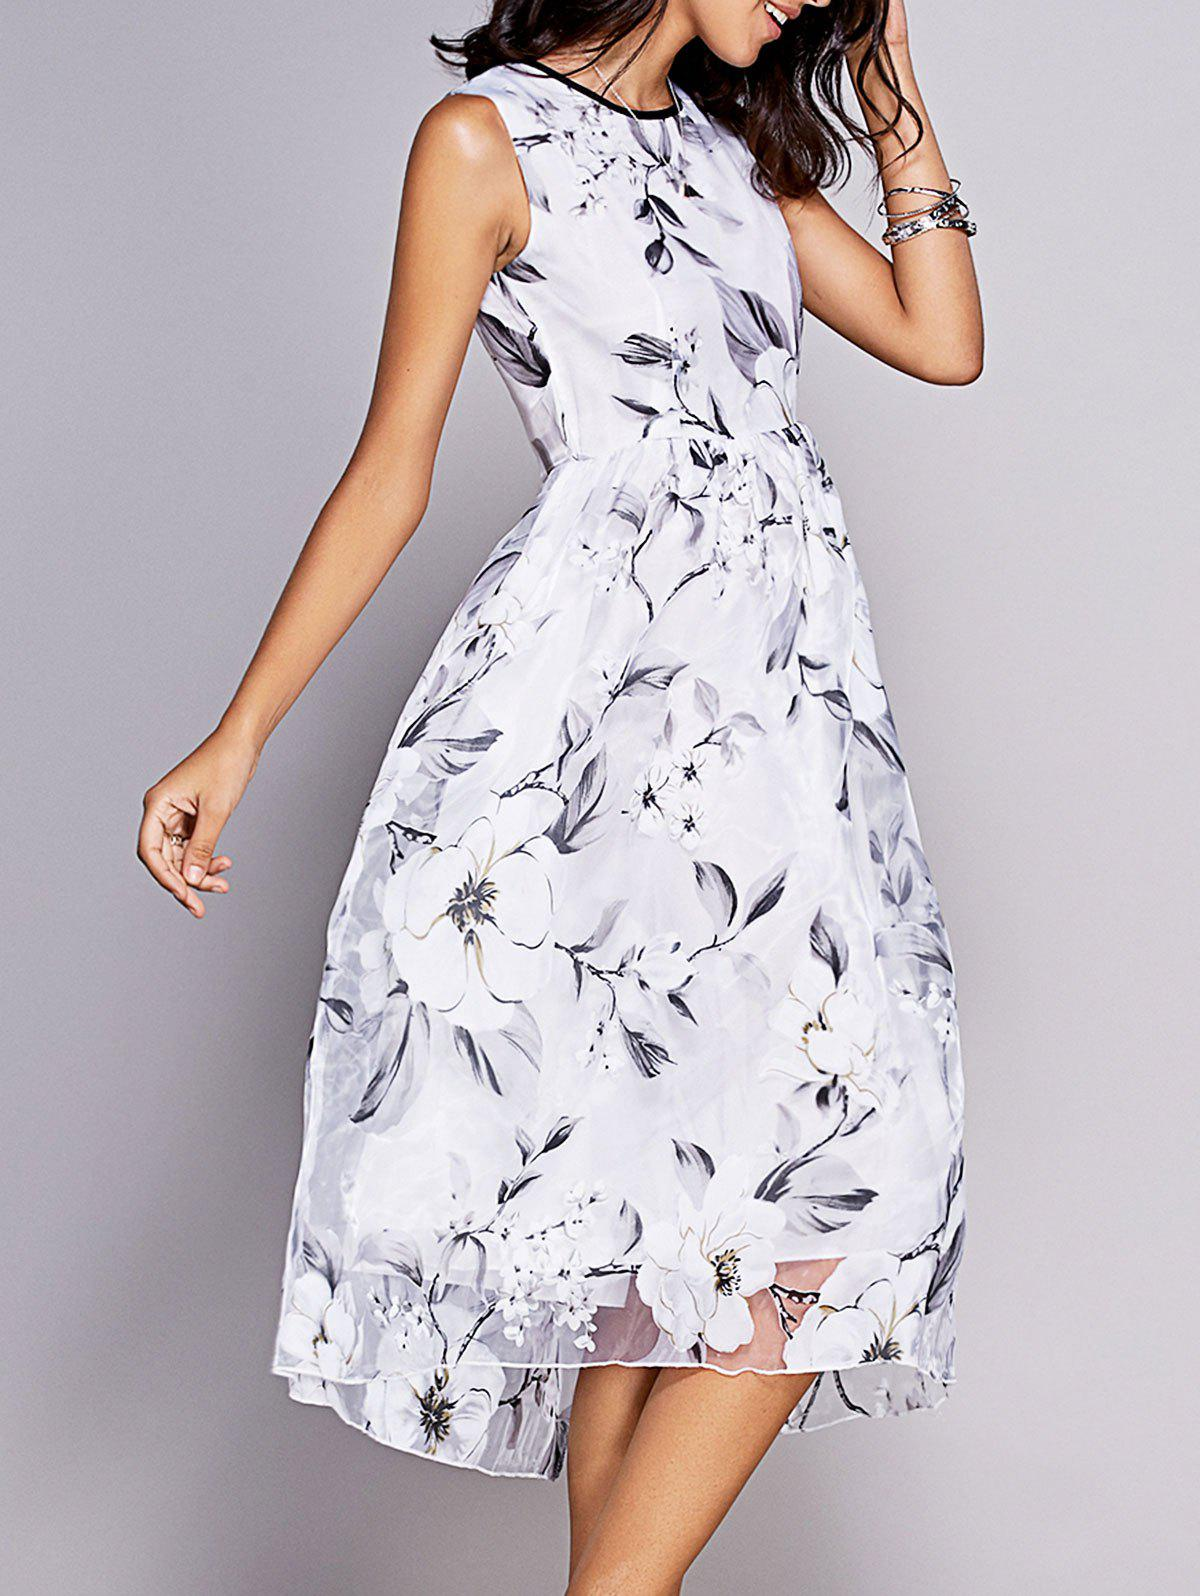 Sweet Round Neck Sleeveless Floral Print Women's Fit and Flare Dress - WHITE XL